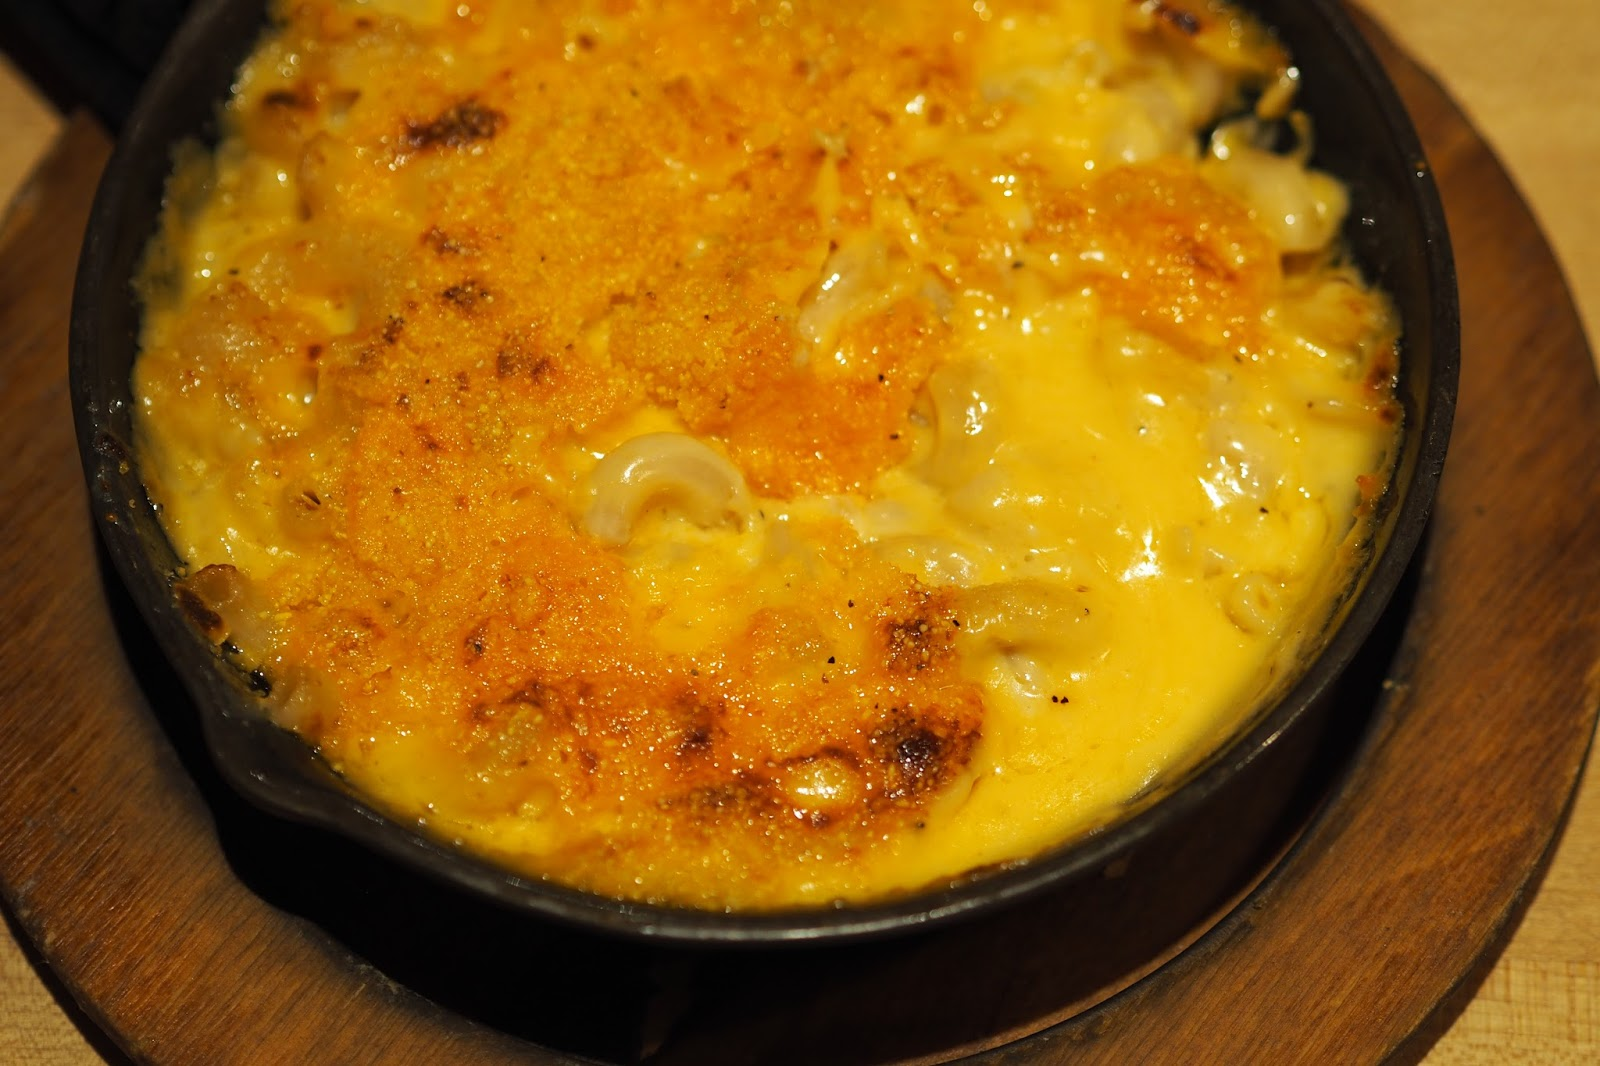 S'mac gluten free mac n cheese